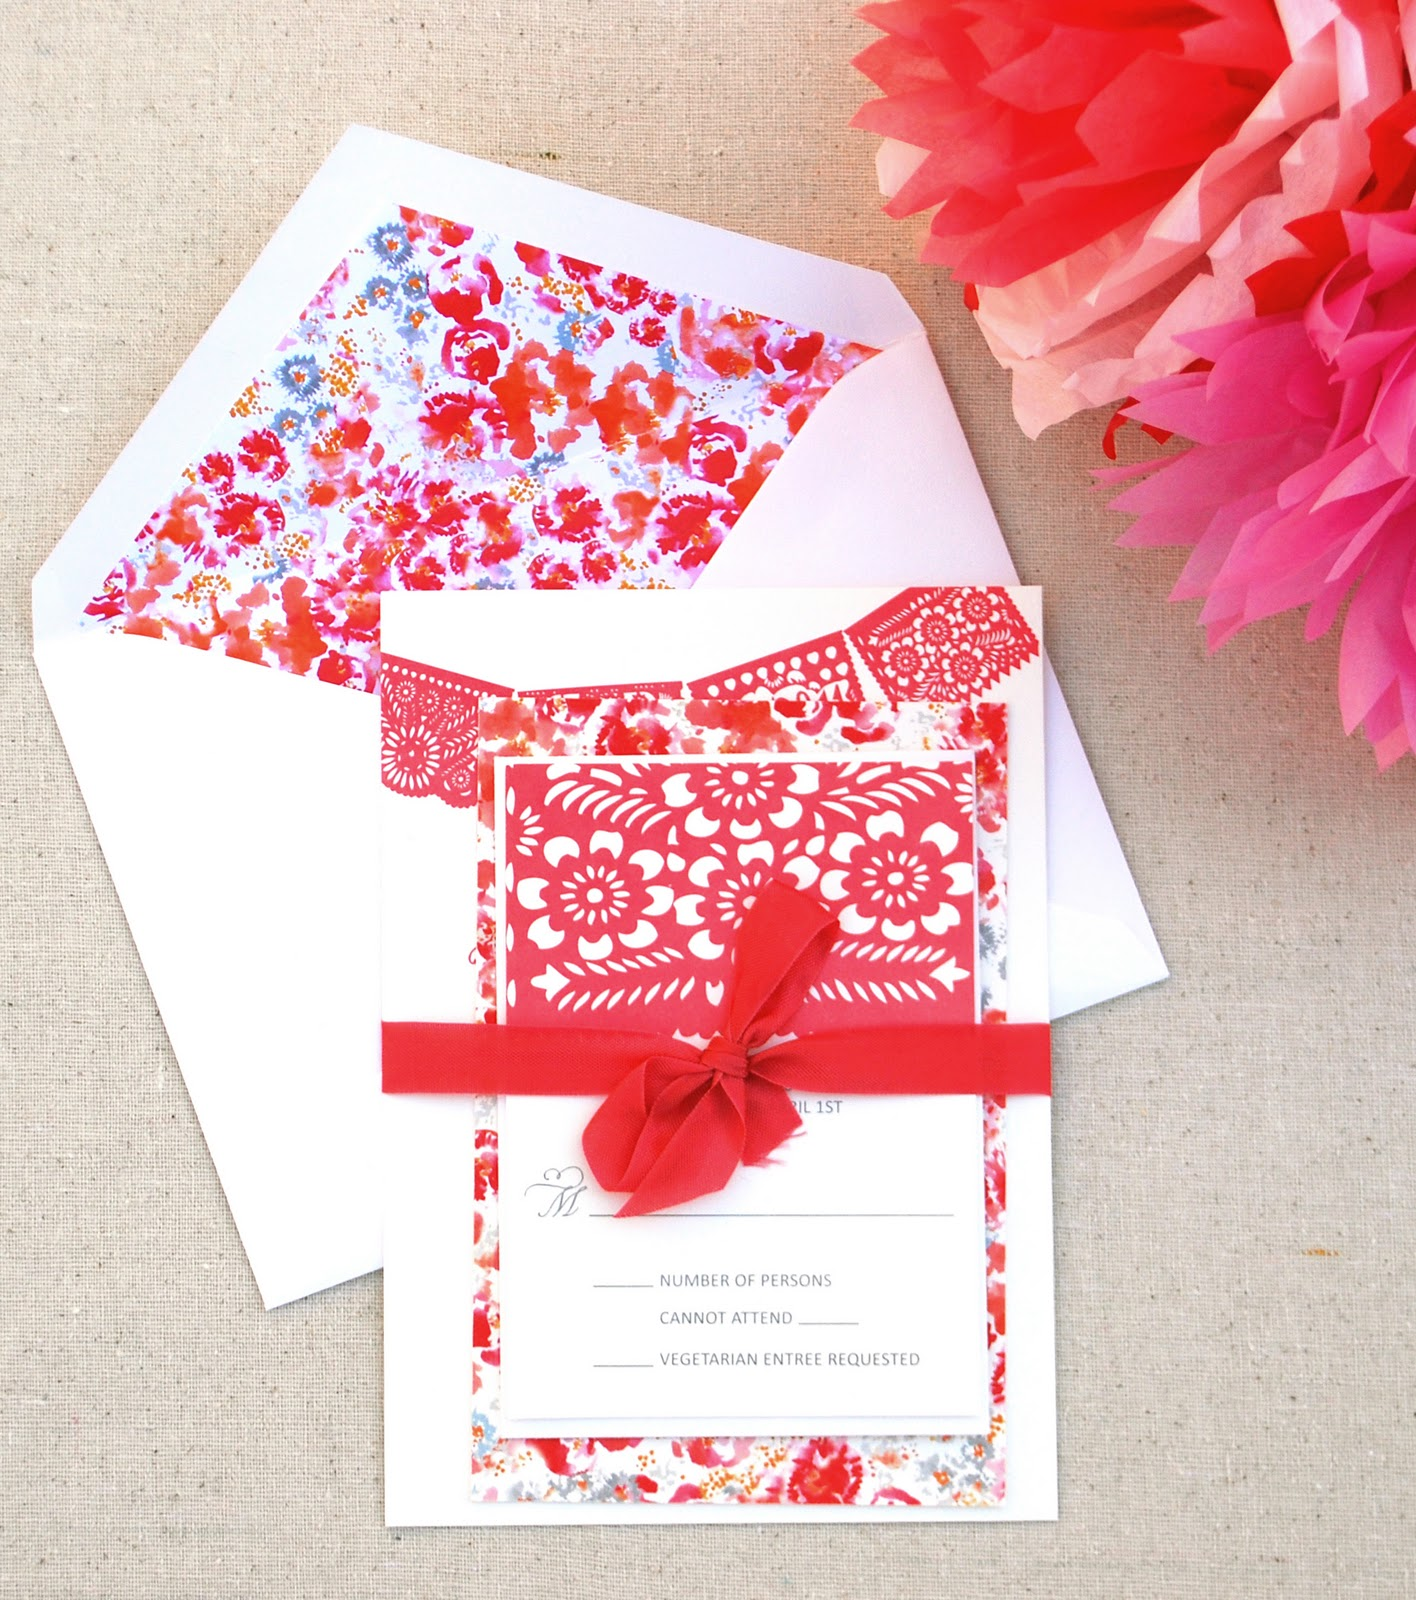 papel picado custom invitation design mexican wedding invitations The invitation suite is tied together with a raspberry rayon ribbon I hand painted a Liberty of London inspired floral pattern that we used for the back of